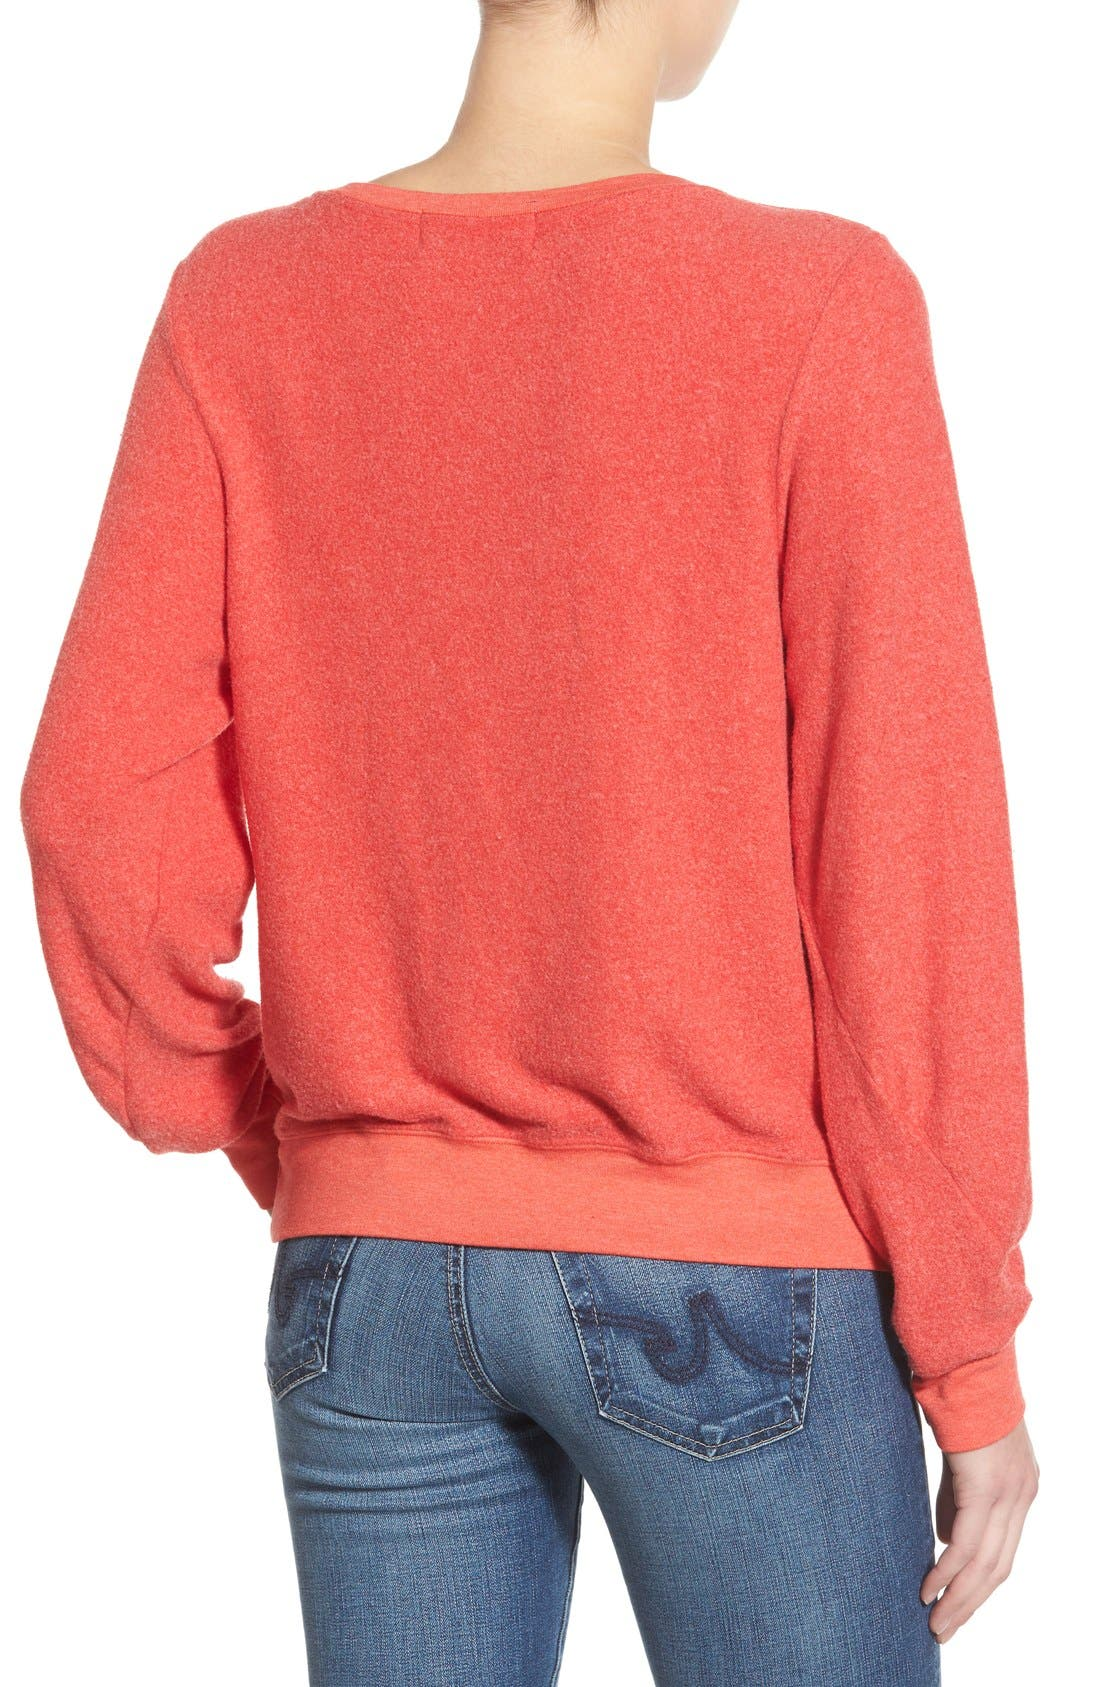 'Baggy Beach Jumper - Not With You' Pullover,                             Alternate thumbnail 3, color,                             Ariel Red